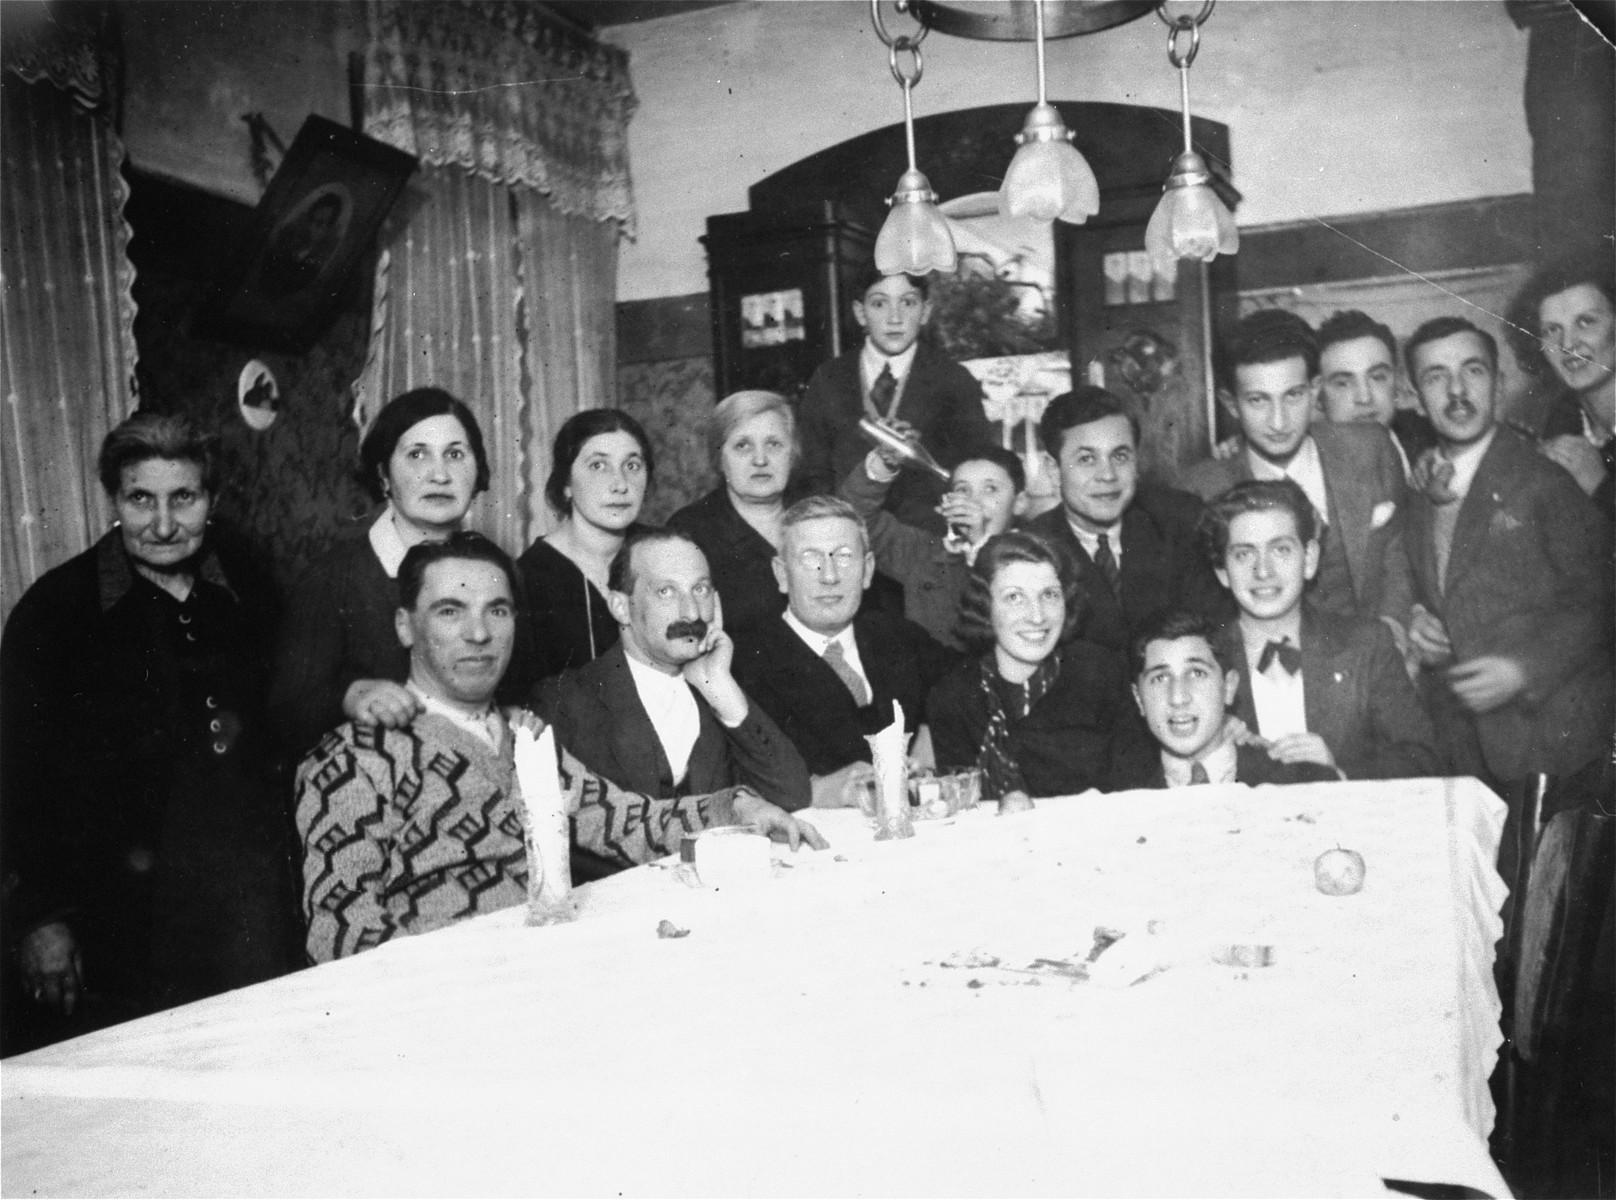 The Magid family at a house party in Vilna.    Among those pictured are Raya, Boris and Genya Magid.  The donor, Genya Markon, is the granddaughter of Abram and Genya (Settel) Magid of Vilna.  The Magids had two daughters, Raya and Katia.  Raya Magid met Alexander Markon, a Jewish émigré living in France, while he was visiting his family in Vilna.  When Alexander returned to France, he and Raya carried on a courtship by mail, and the two were married in Paris on February 11, 1937.  In 1939, Alexander, who had served in the French army in 1927-1928, was recalled to the military.  Following his demobilization in the summer of 1940, he joined Raya, who had moved to Toulouse.  While waiting for permission to immigrate to the United States, she gave birth to their first child, Alain, on June 13, 1941.  In 1942 their visas arrived and they booked passage to the U.S. aboard the Portuguese liner Carvalho Araujo.  The ship left Lisbon in late October, arriving in Baltimore on November 2, 1942. Genya Magid died a natural death in Vilna in 1939.  With the German invasion of 1941 Abram and Katia were forced into the Vilna ghetto.  Abram was killed that same year during an action in Ponary.  Katia survived the concentration camps of Kaiserwald and Stutthof.